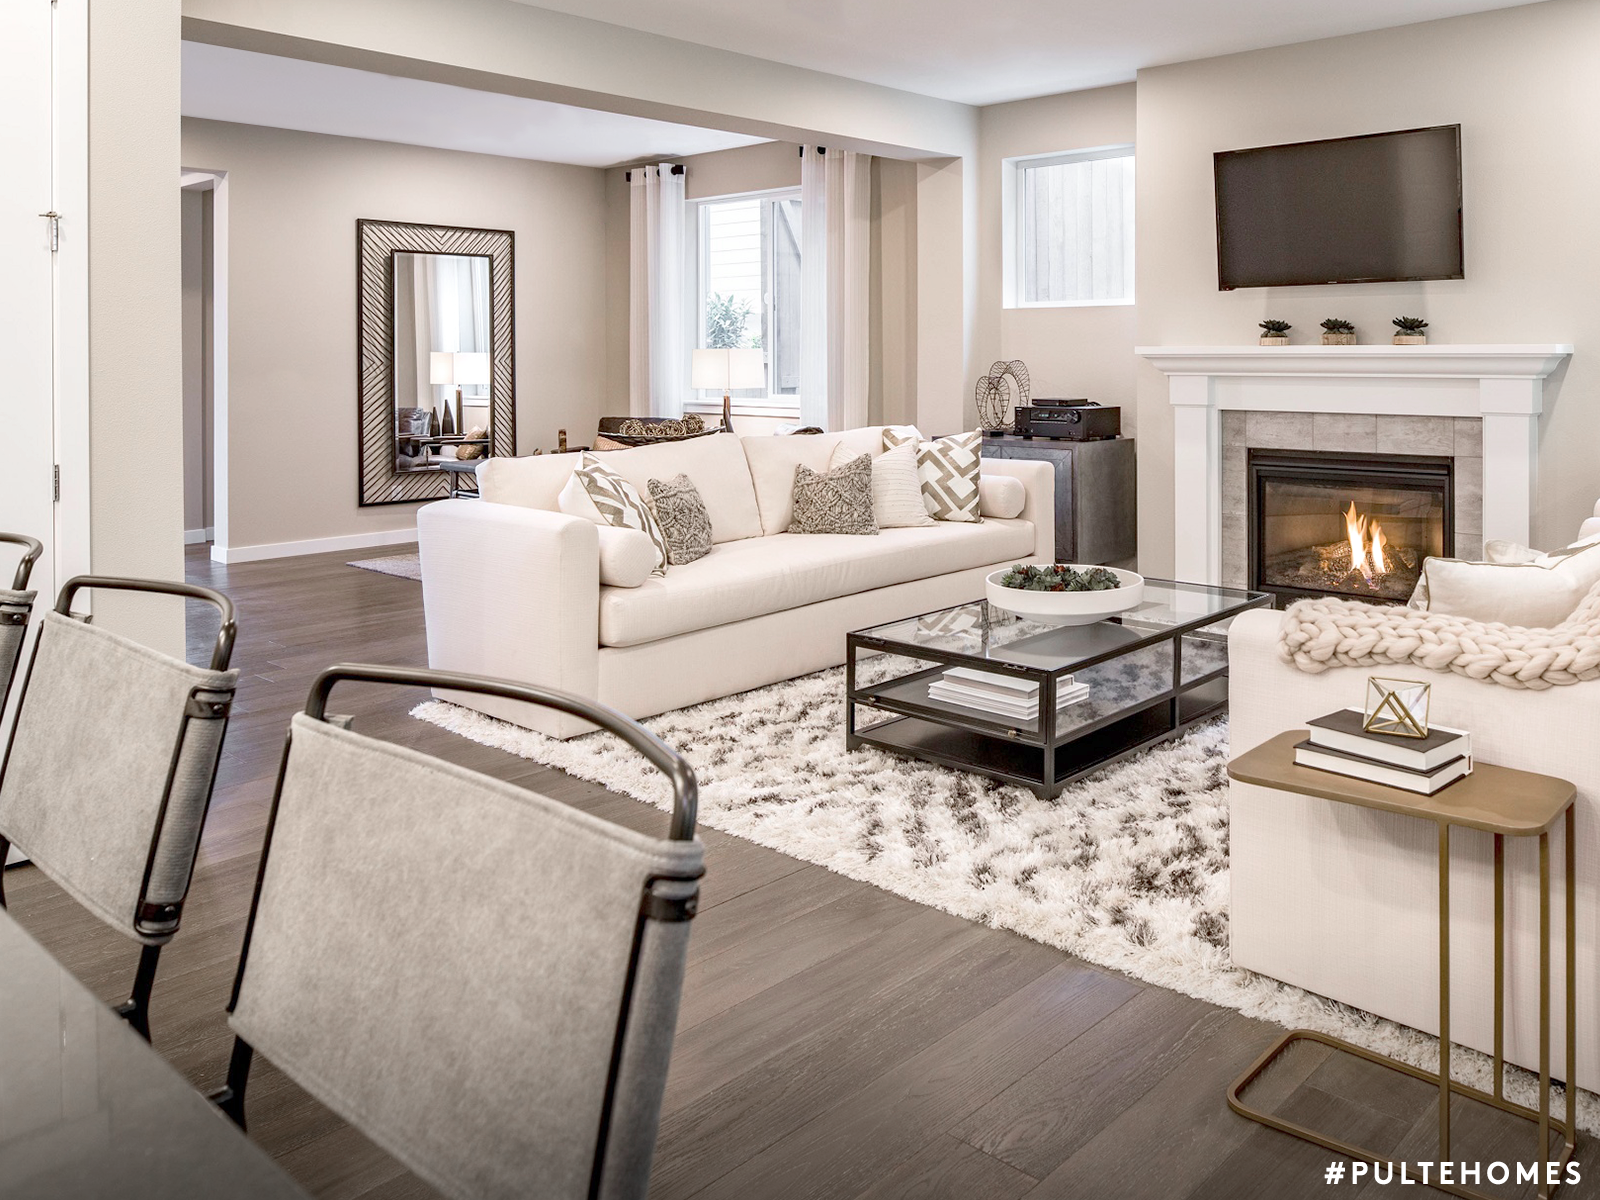 Make Your Home S Space Go Further With An Open Concept Floor Plan